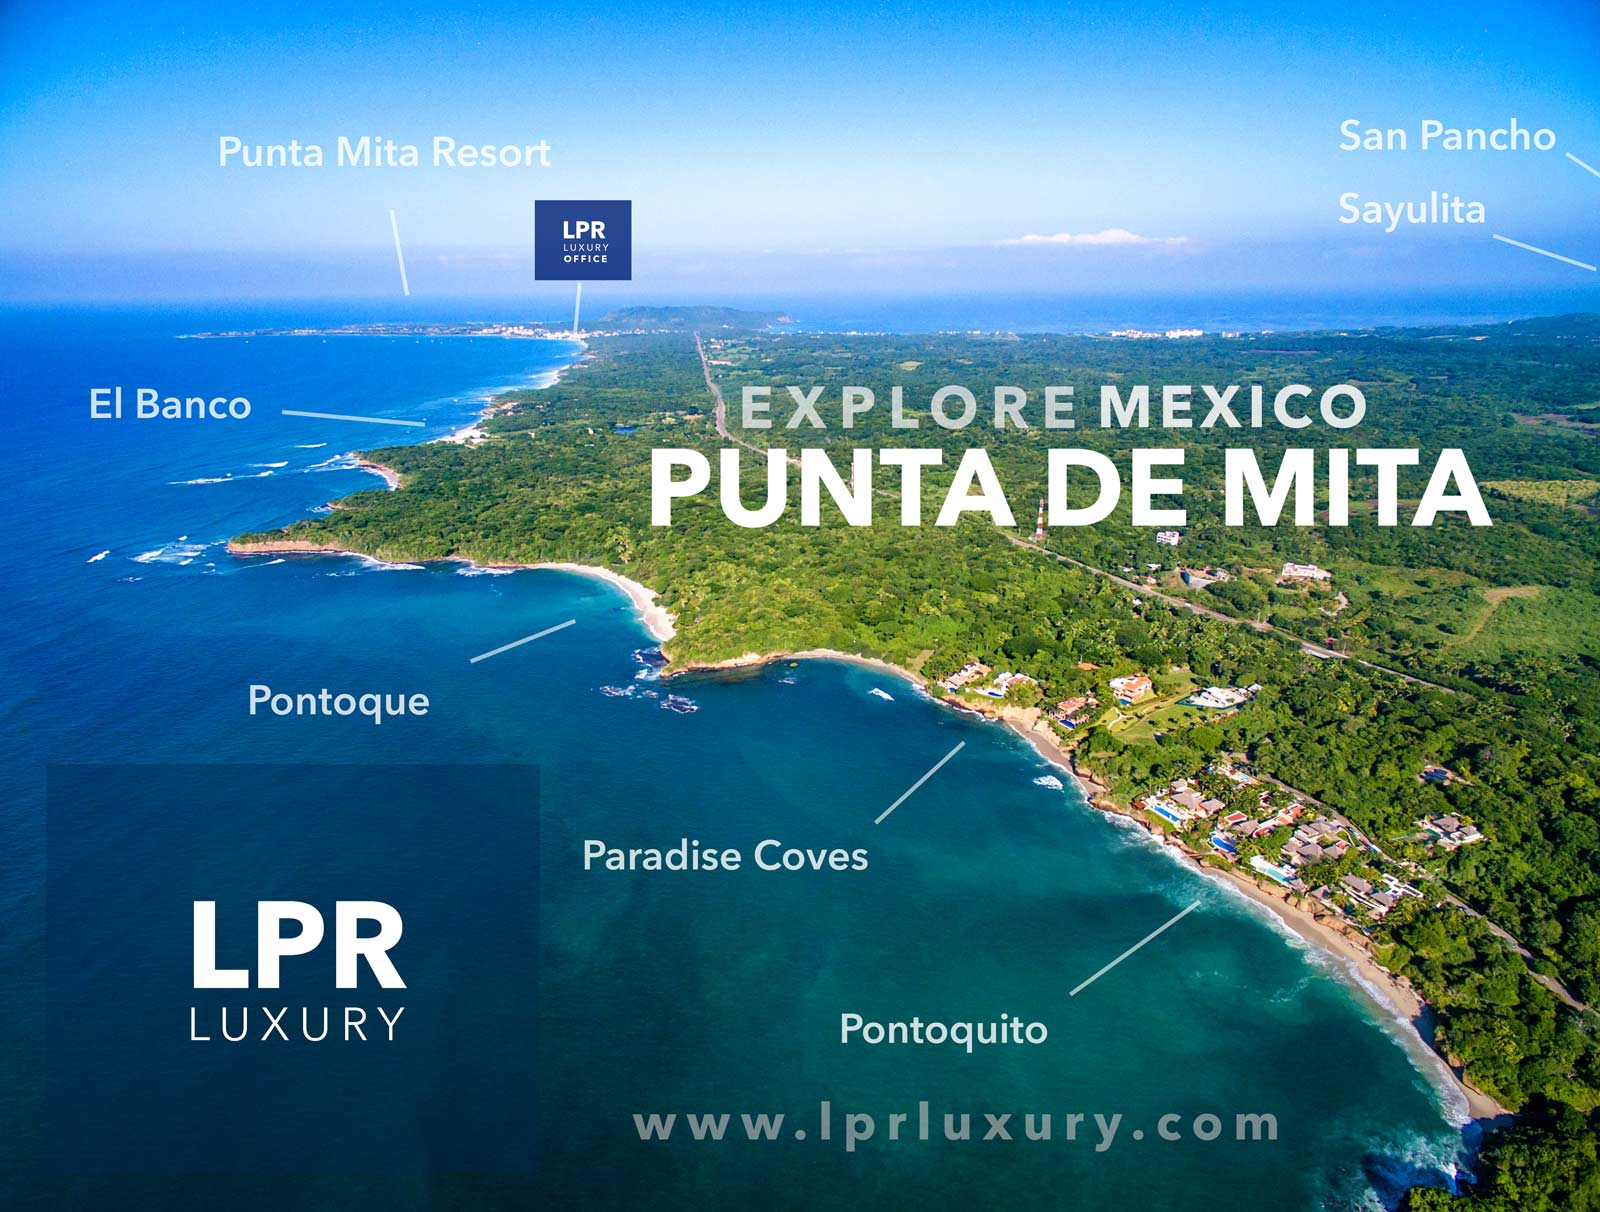 Explore for your dream home building lot with LPR Luxury. Land, luxury, leisure...Punta de Mita | Puerto Vallarta - Riviera Nayarit, Mexico